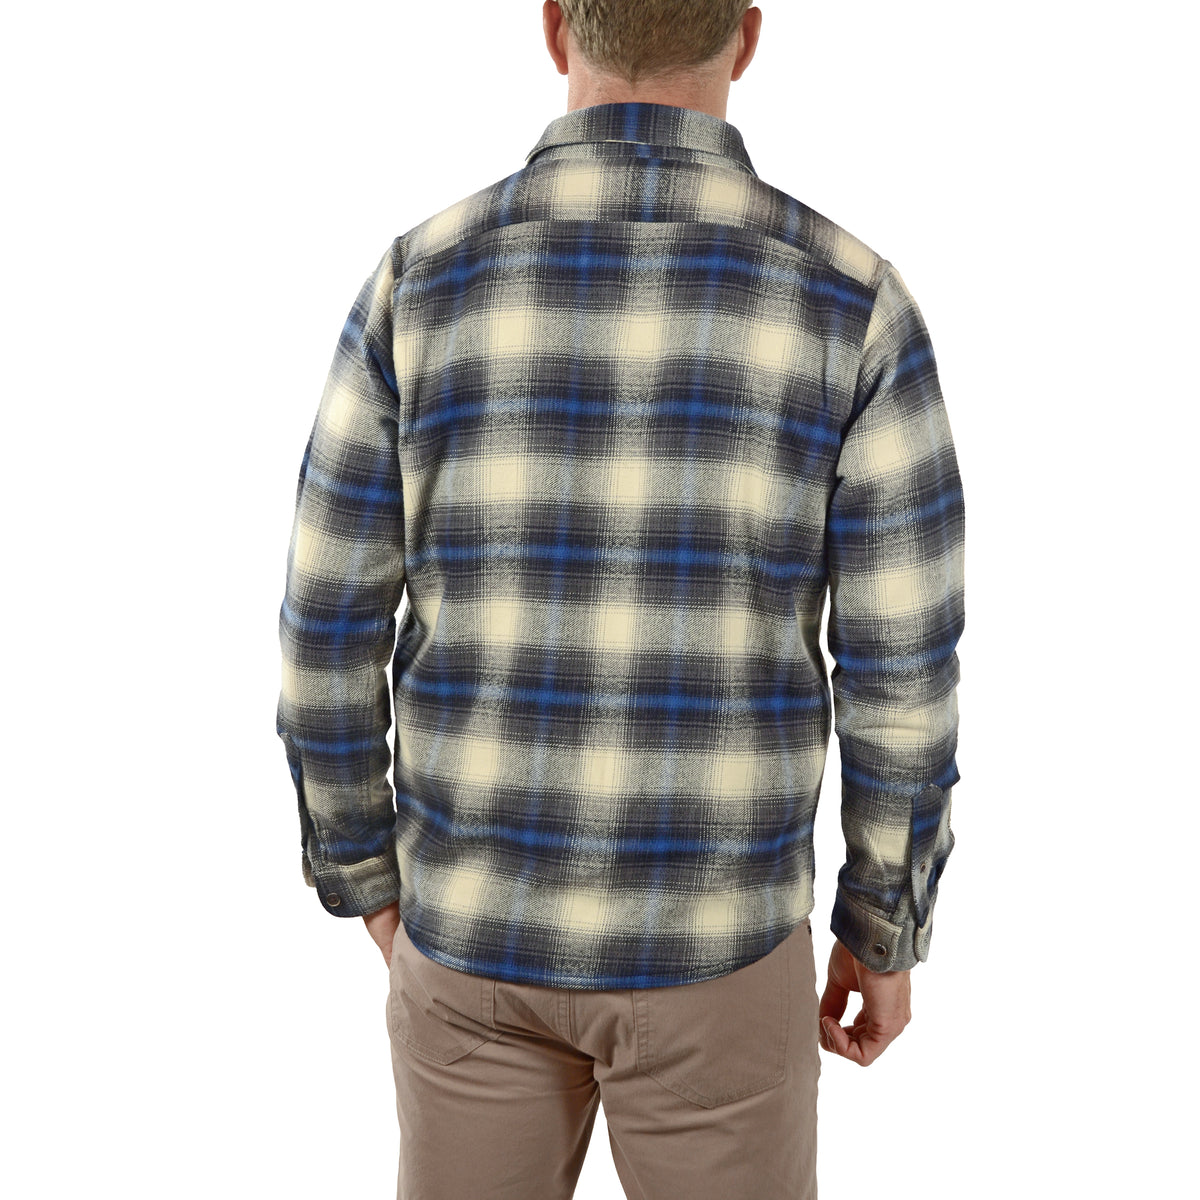 Back View Airotec® Performance Heavy Weight Df Shirt Jacket in Navy Apres Df Plaid